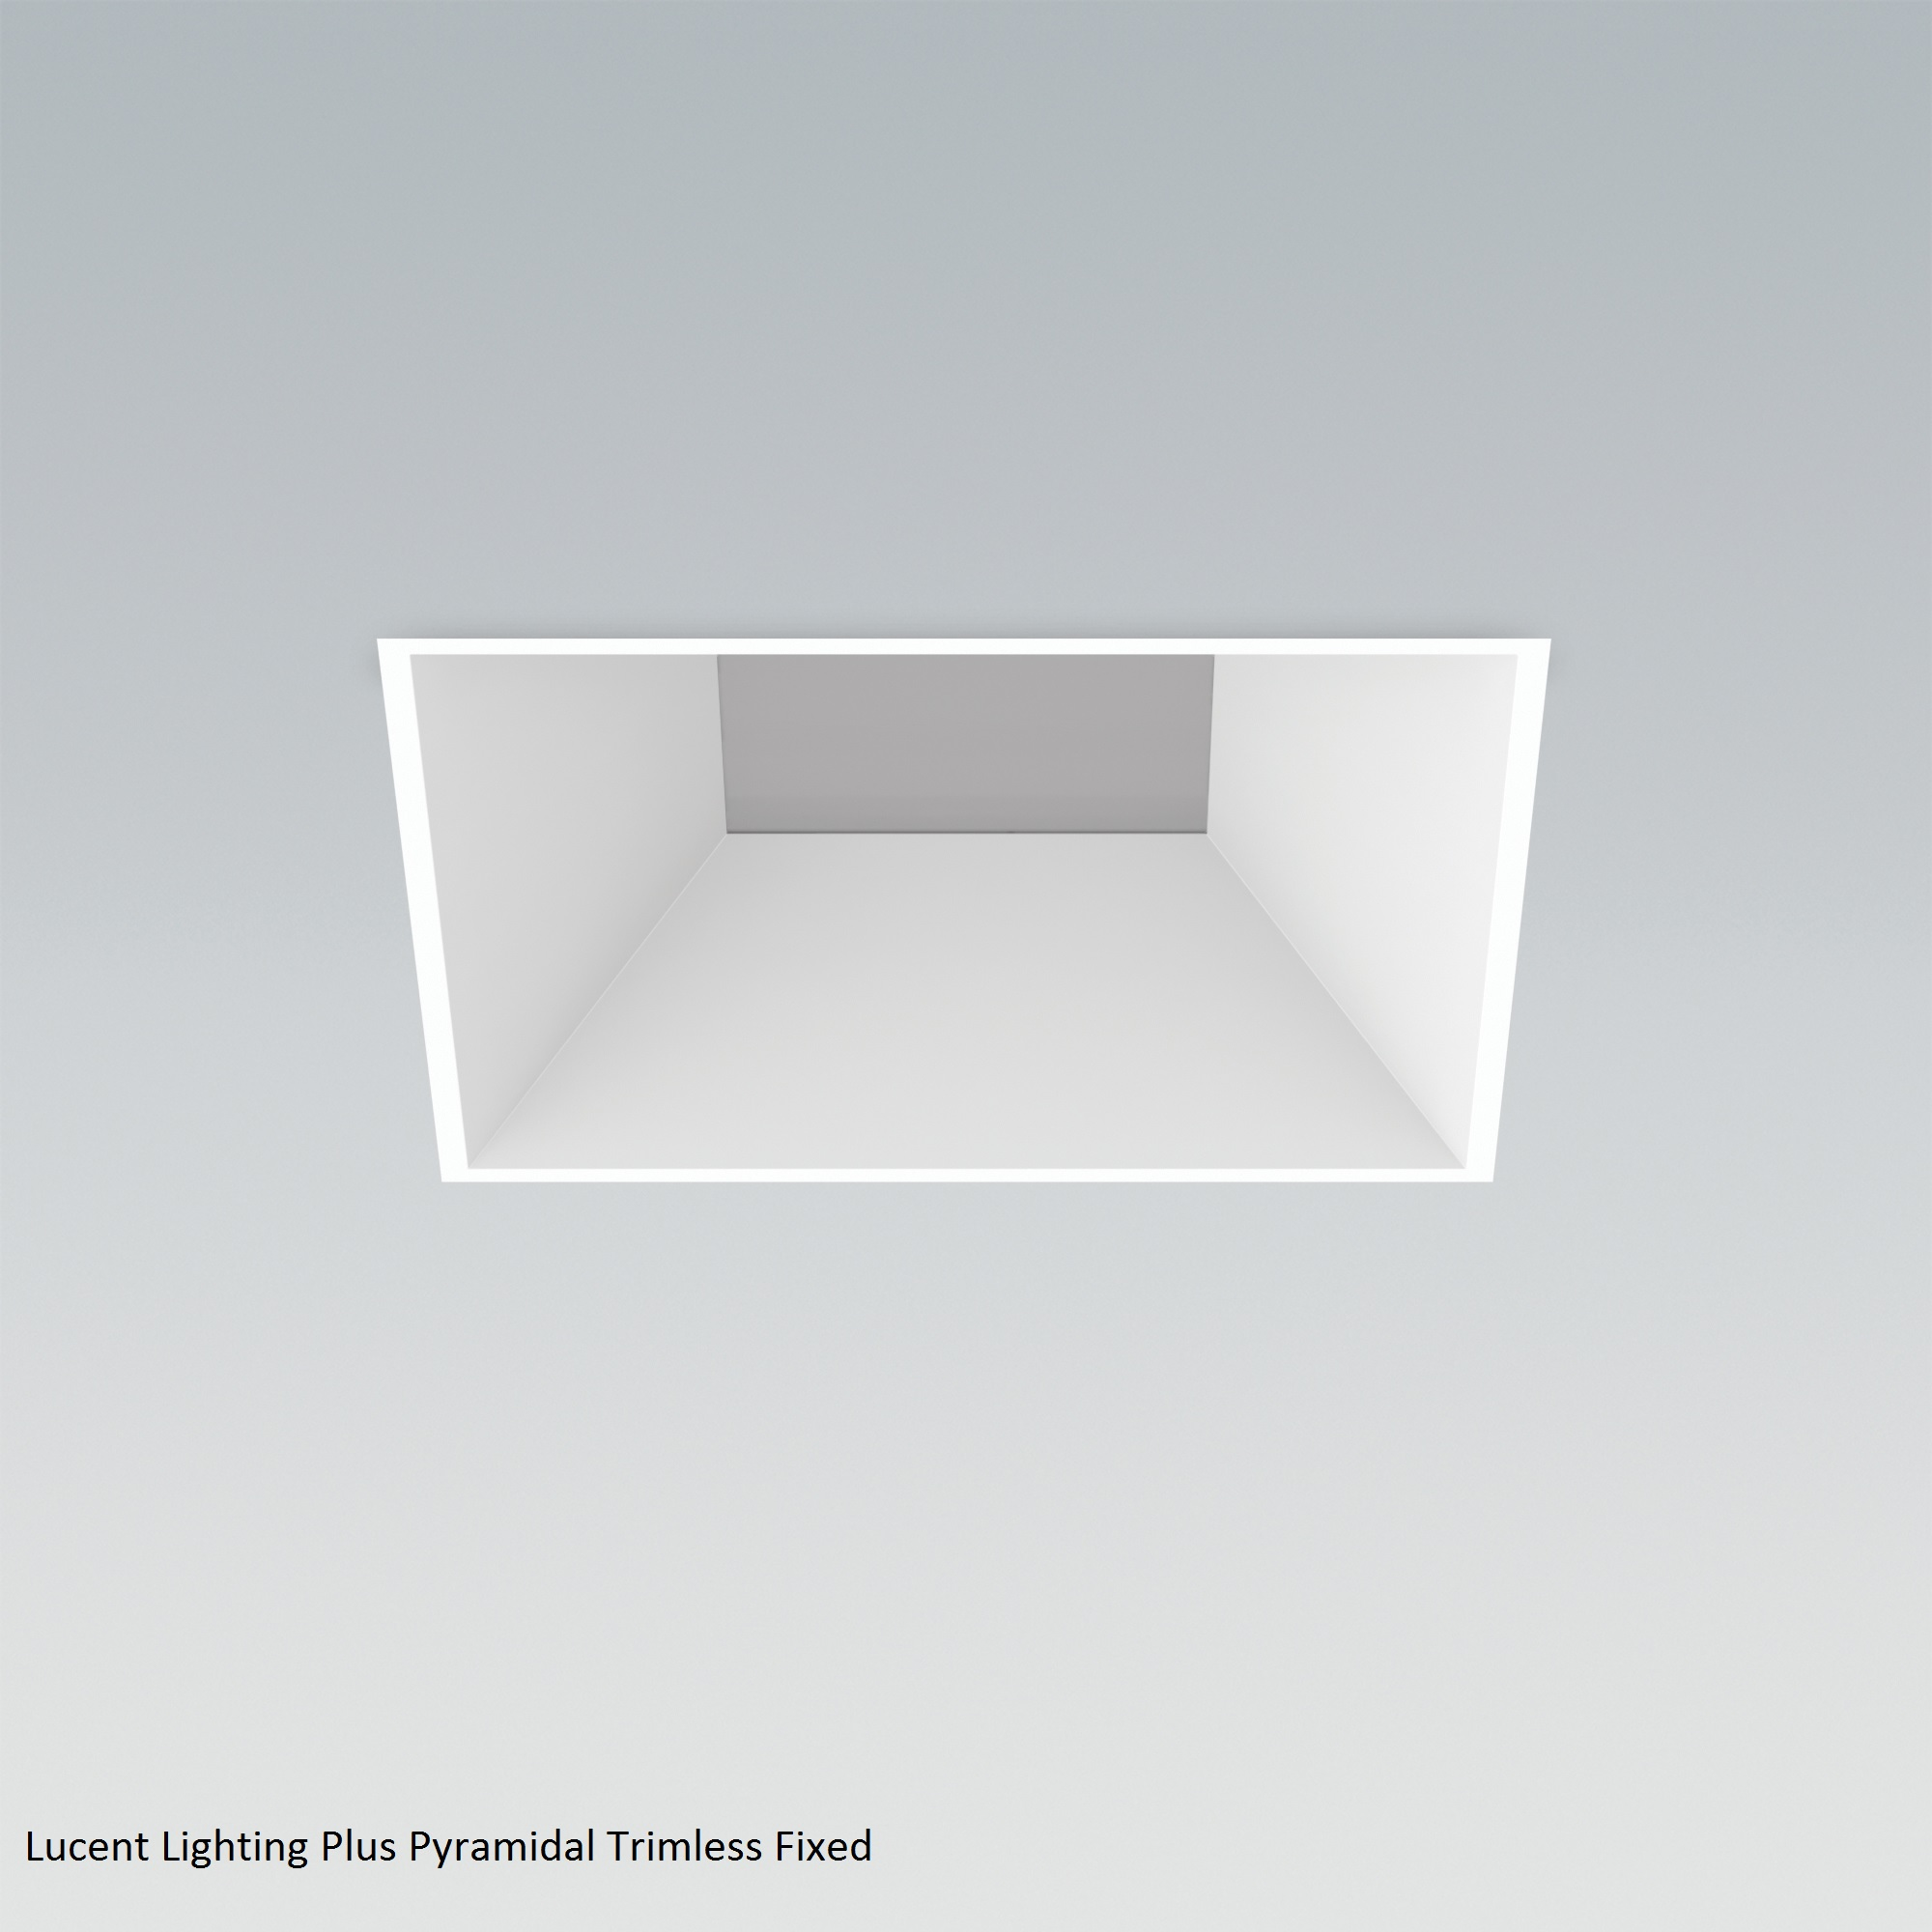 lucent-lighting-plus-pyramidal-trimless-fixed